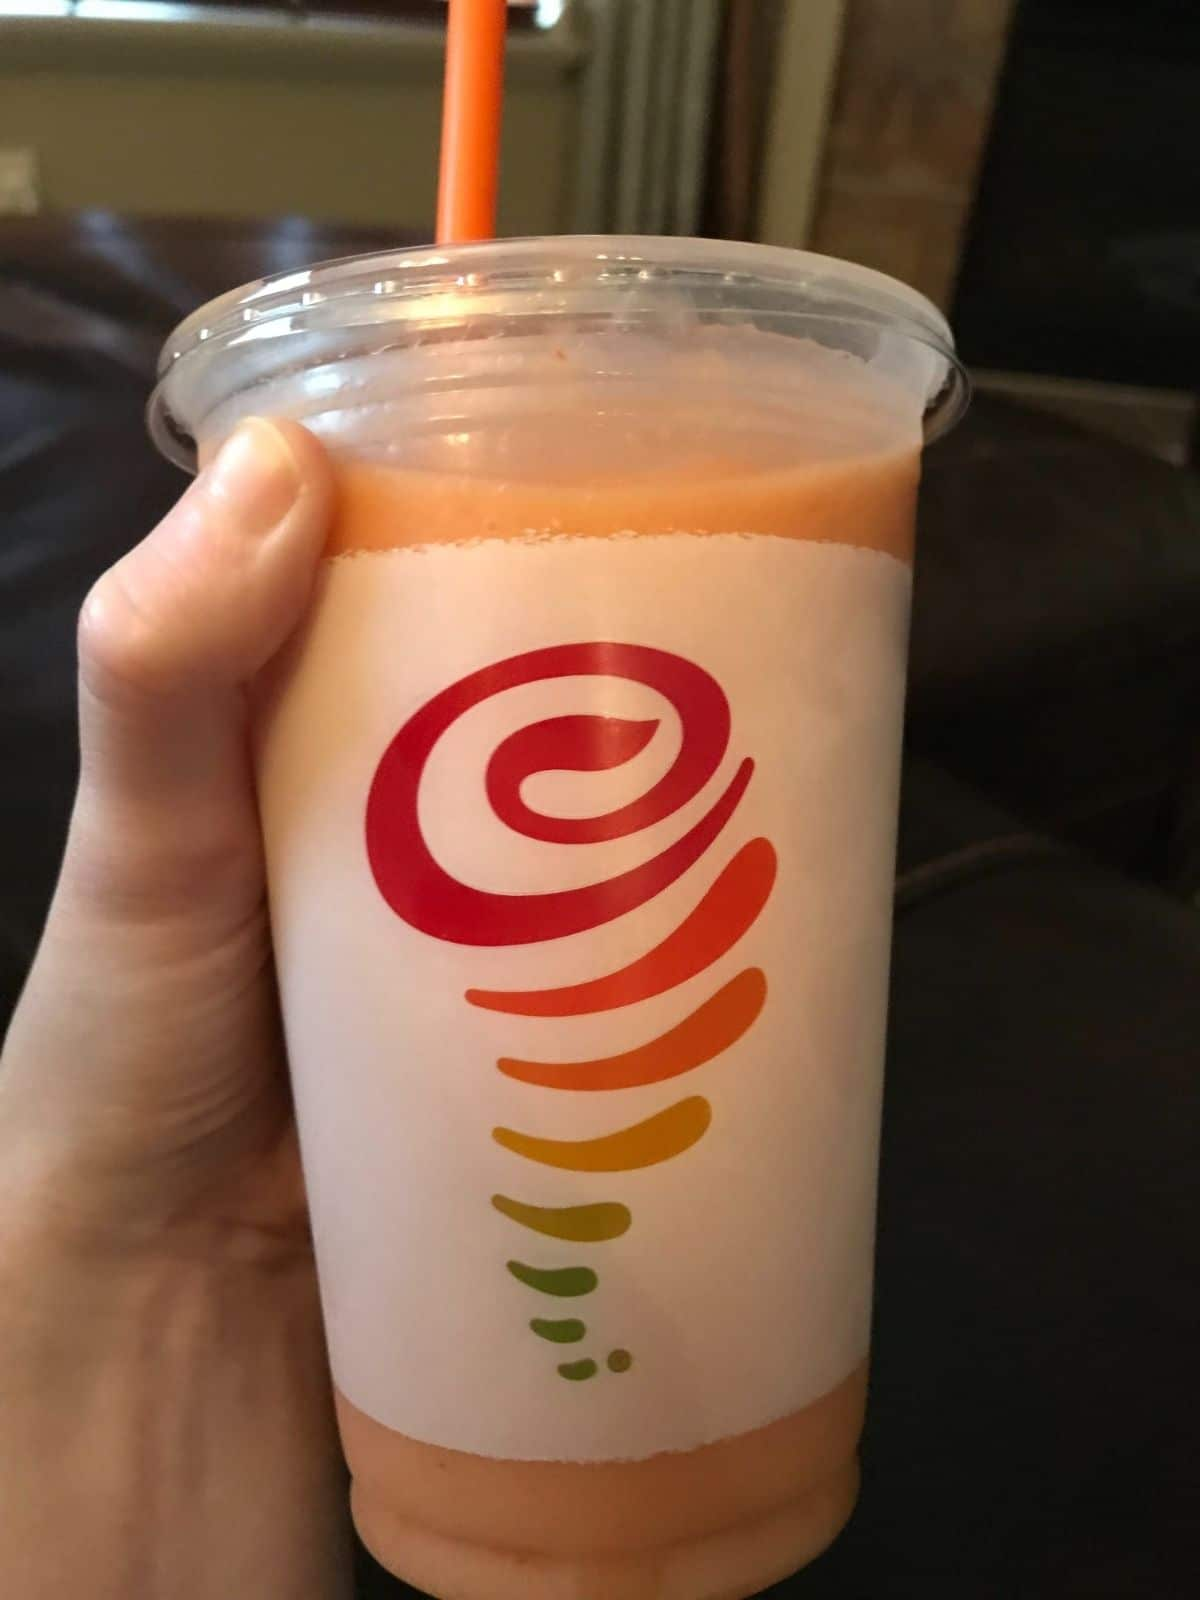 mega mango smoothie from jamba juice being held in a hand with a dark background